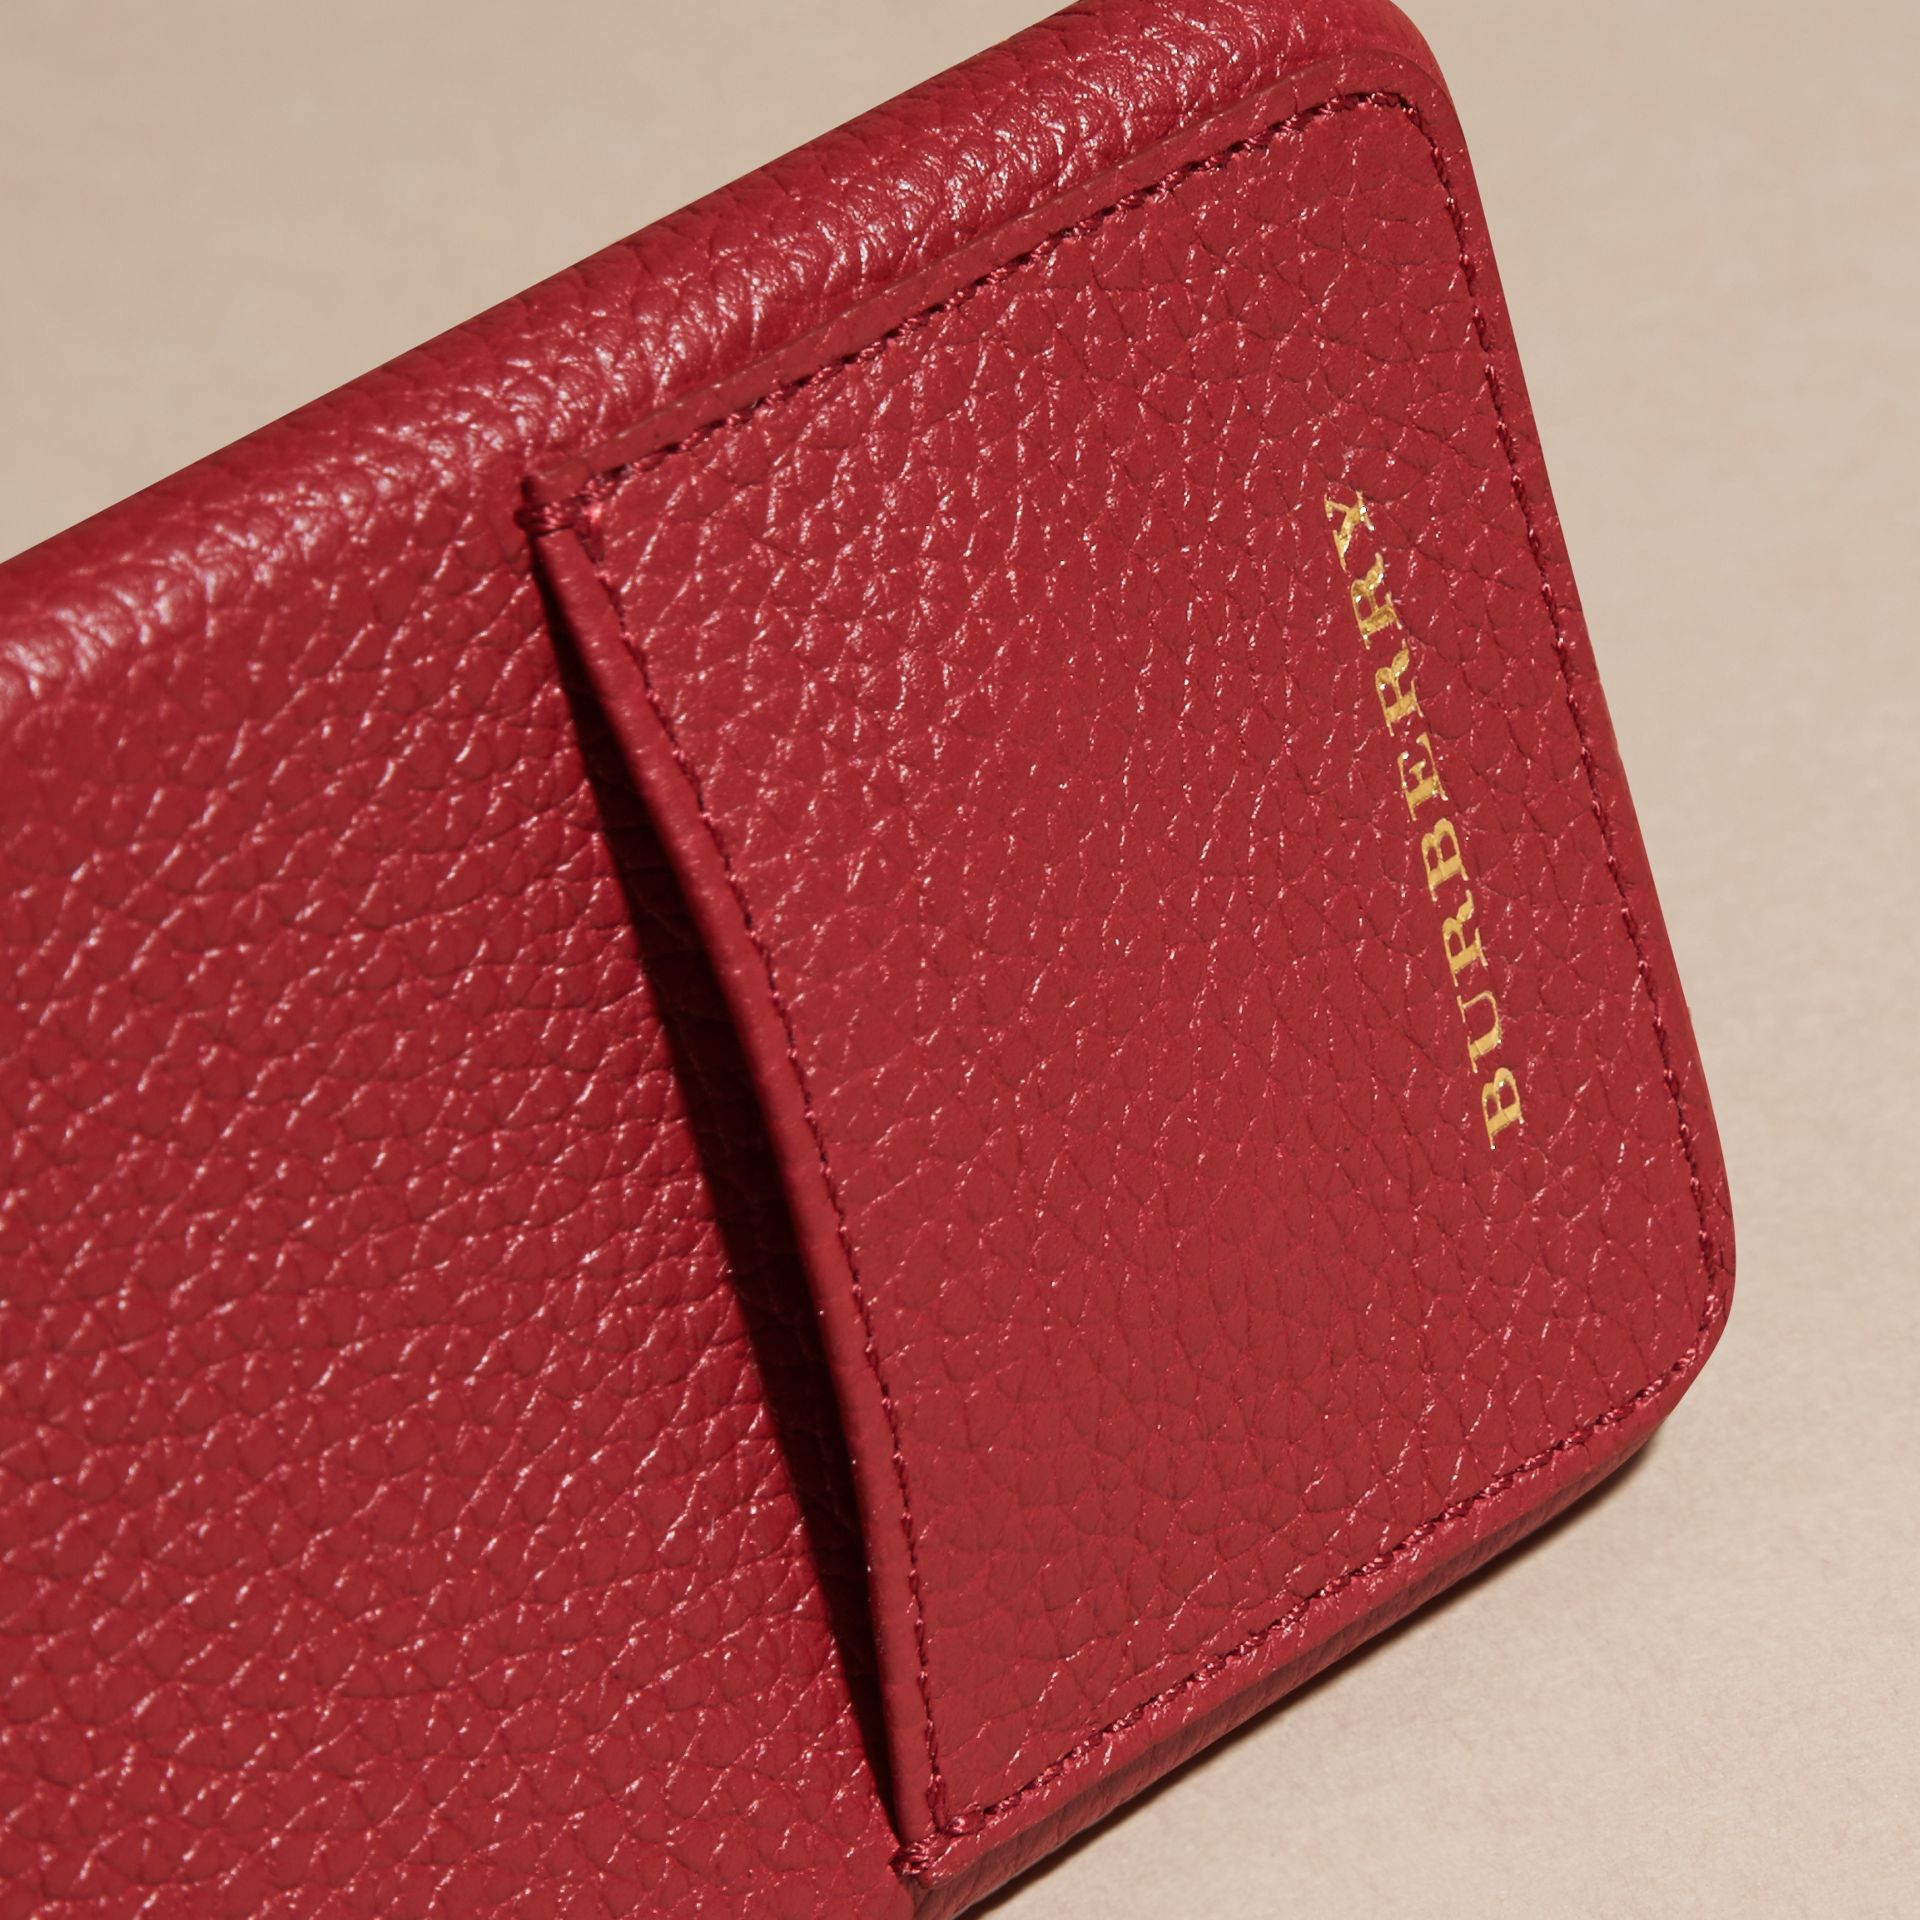 Étui pour iPhone 6 en cuir grené (Rouge Parade) | Burberry - photo de la galerie 2